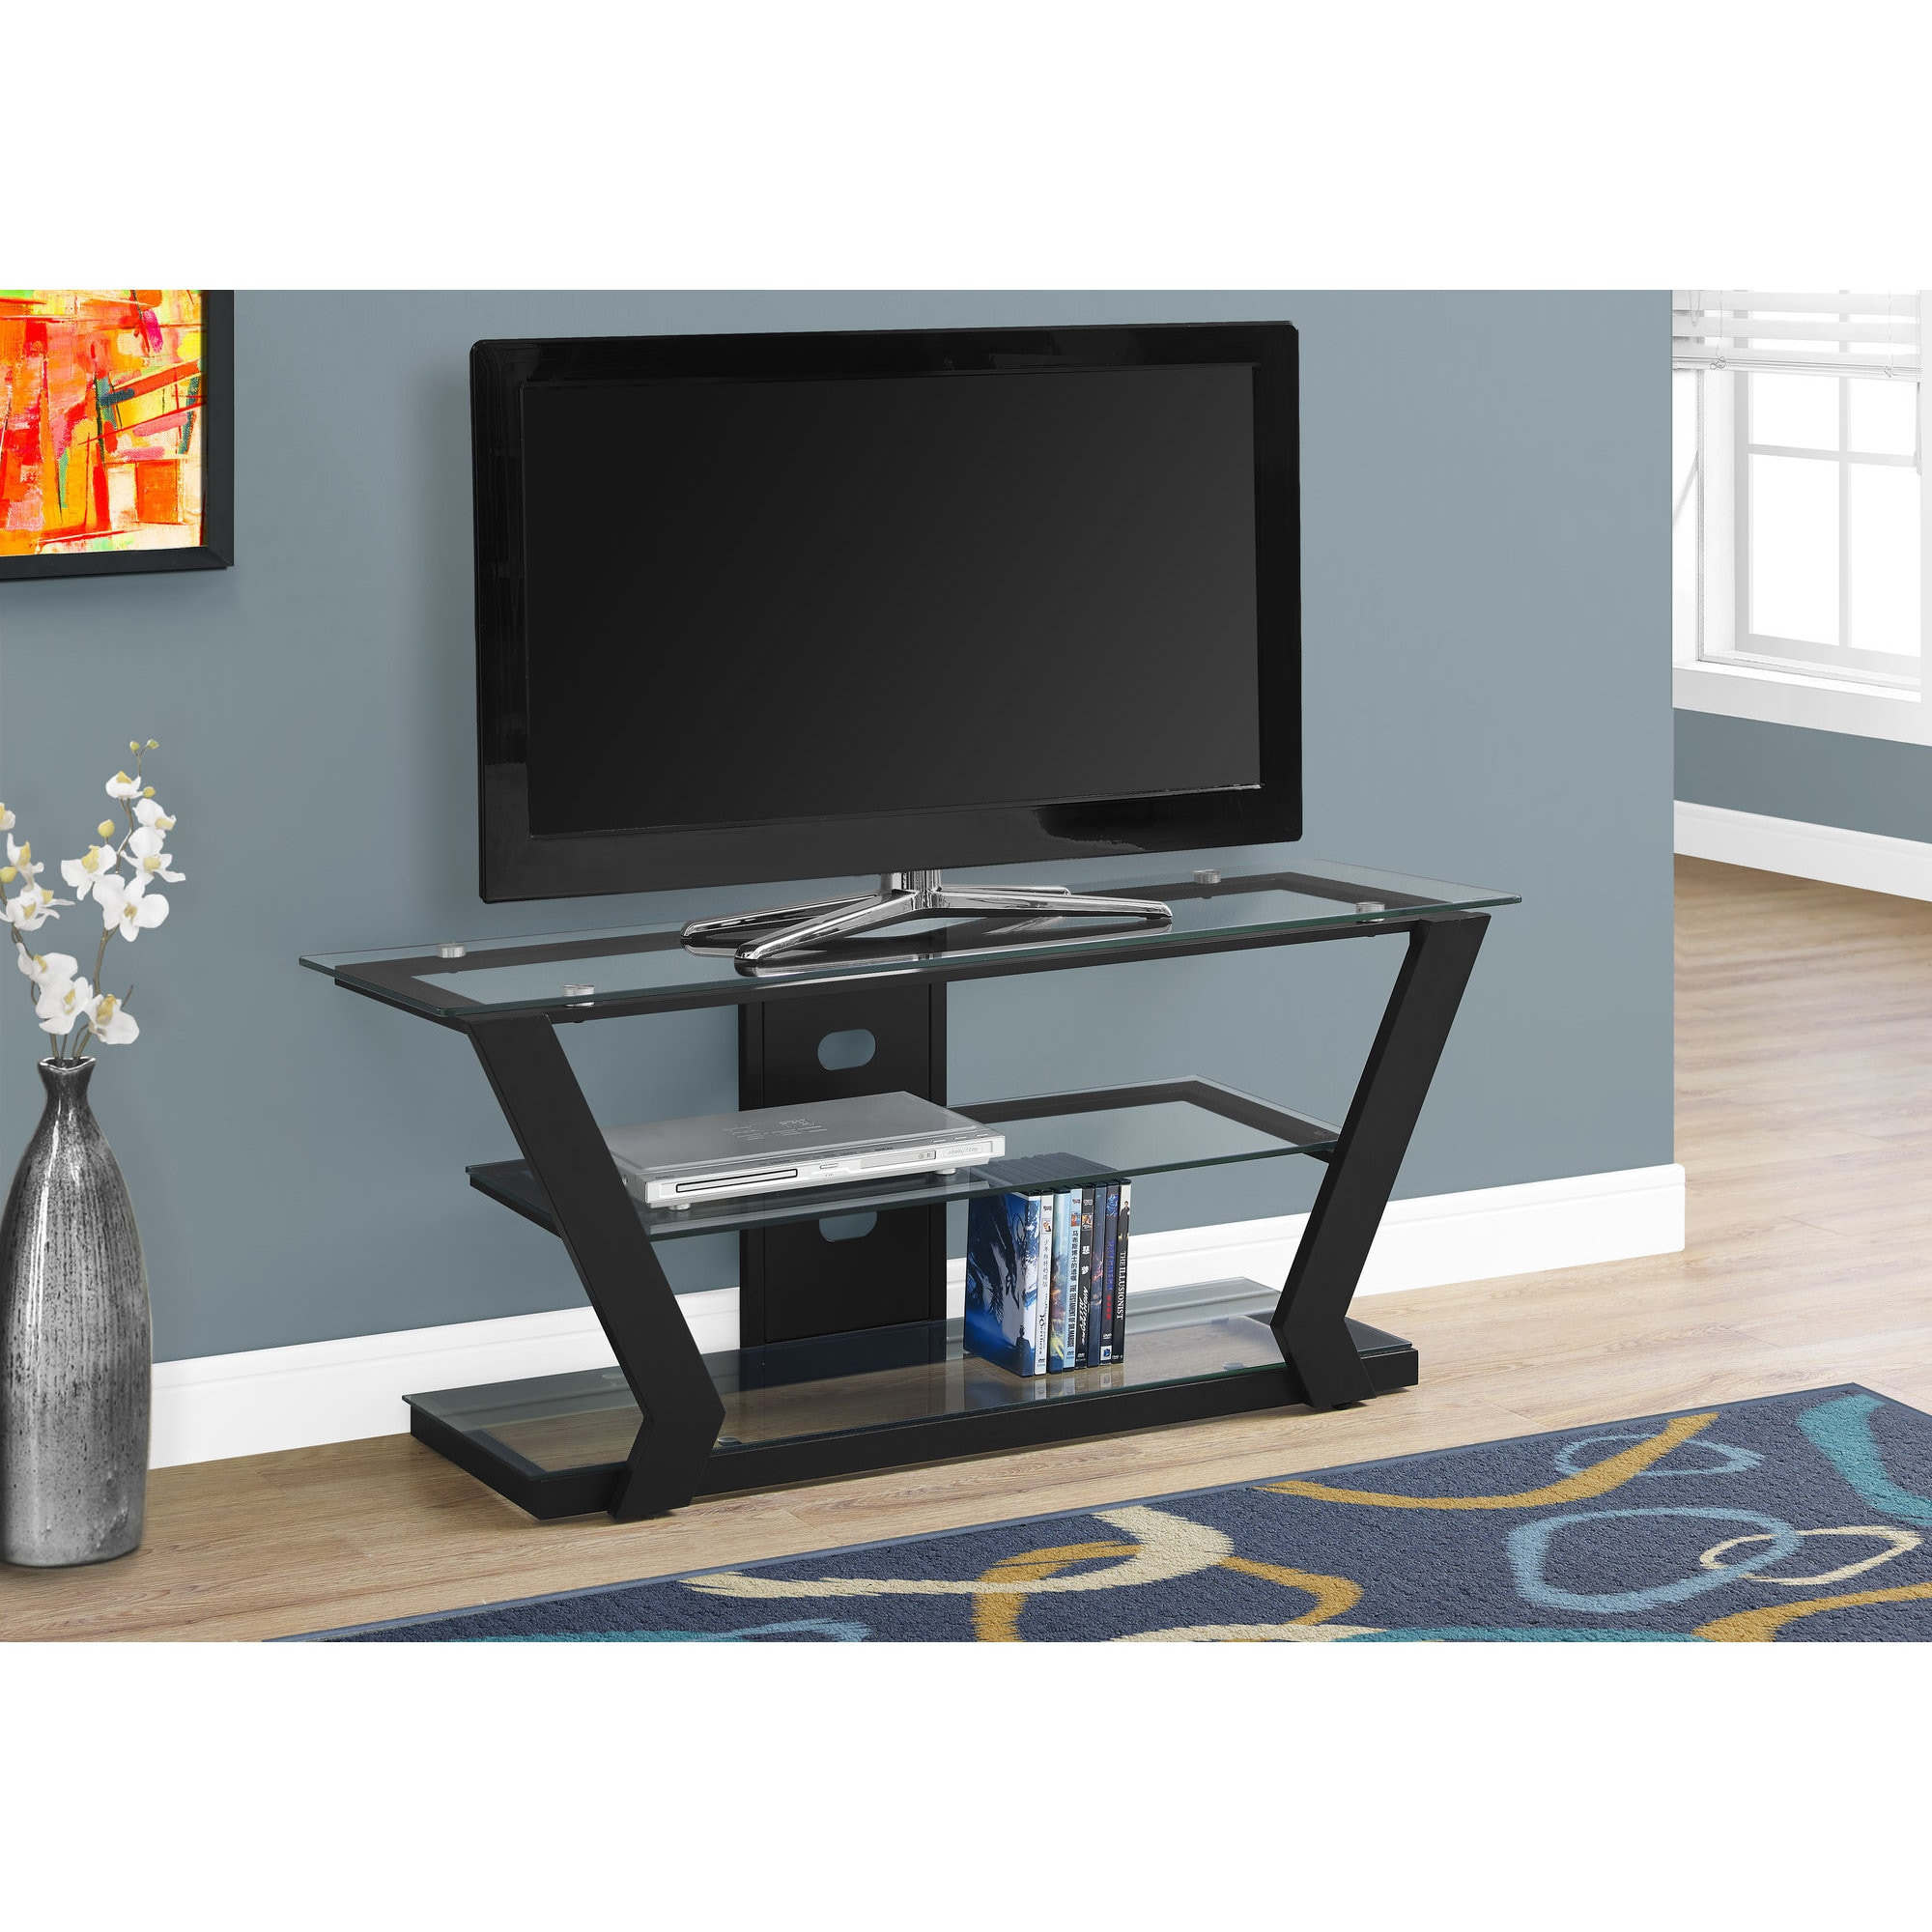 Shop Tv Stand 48 L Black Metal With Tempered Glass Free